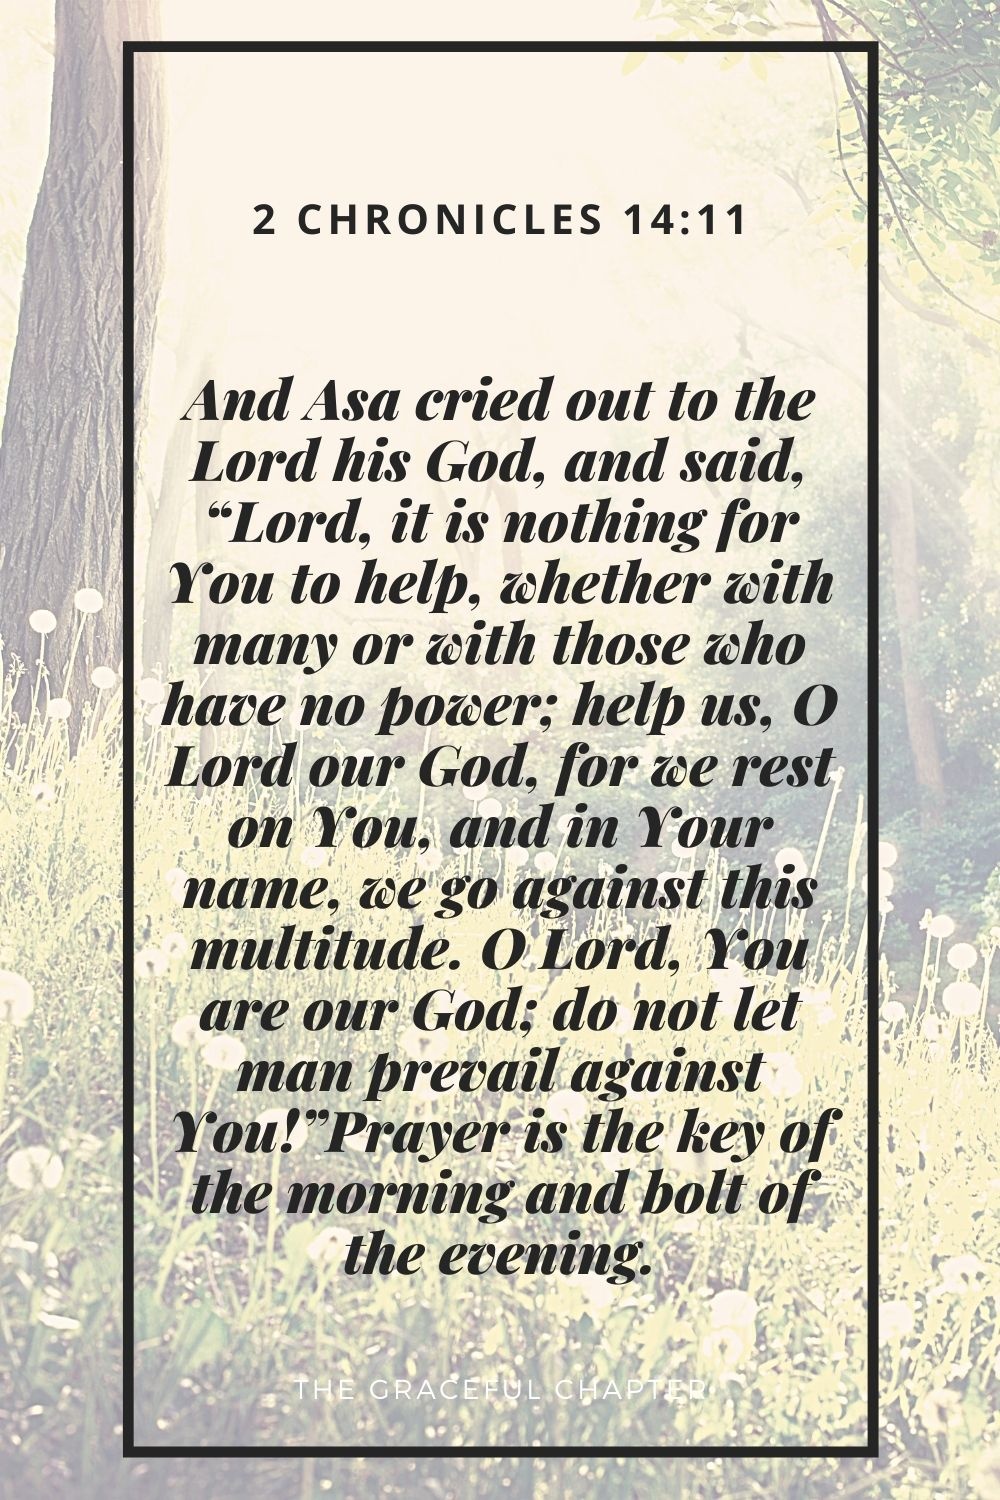 """And Asa cried out to the Lord his God, and said, """"Lord, it is nothing for You to help, whether with many or with those who have no power; help us, O Lord our God, for we rest on You, and in Your name, we go against this multitude. O Lord, You are our God; do not let man prevail against You!"""" 2 Chronicles 14:11"""